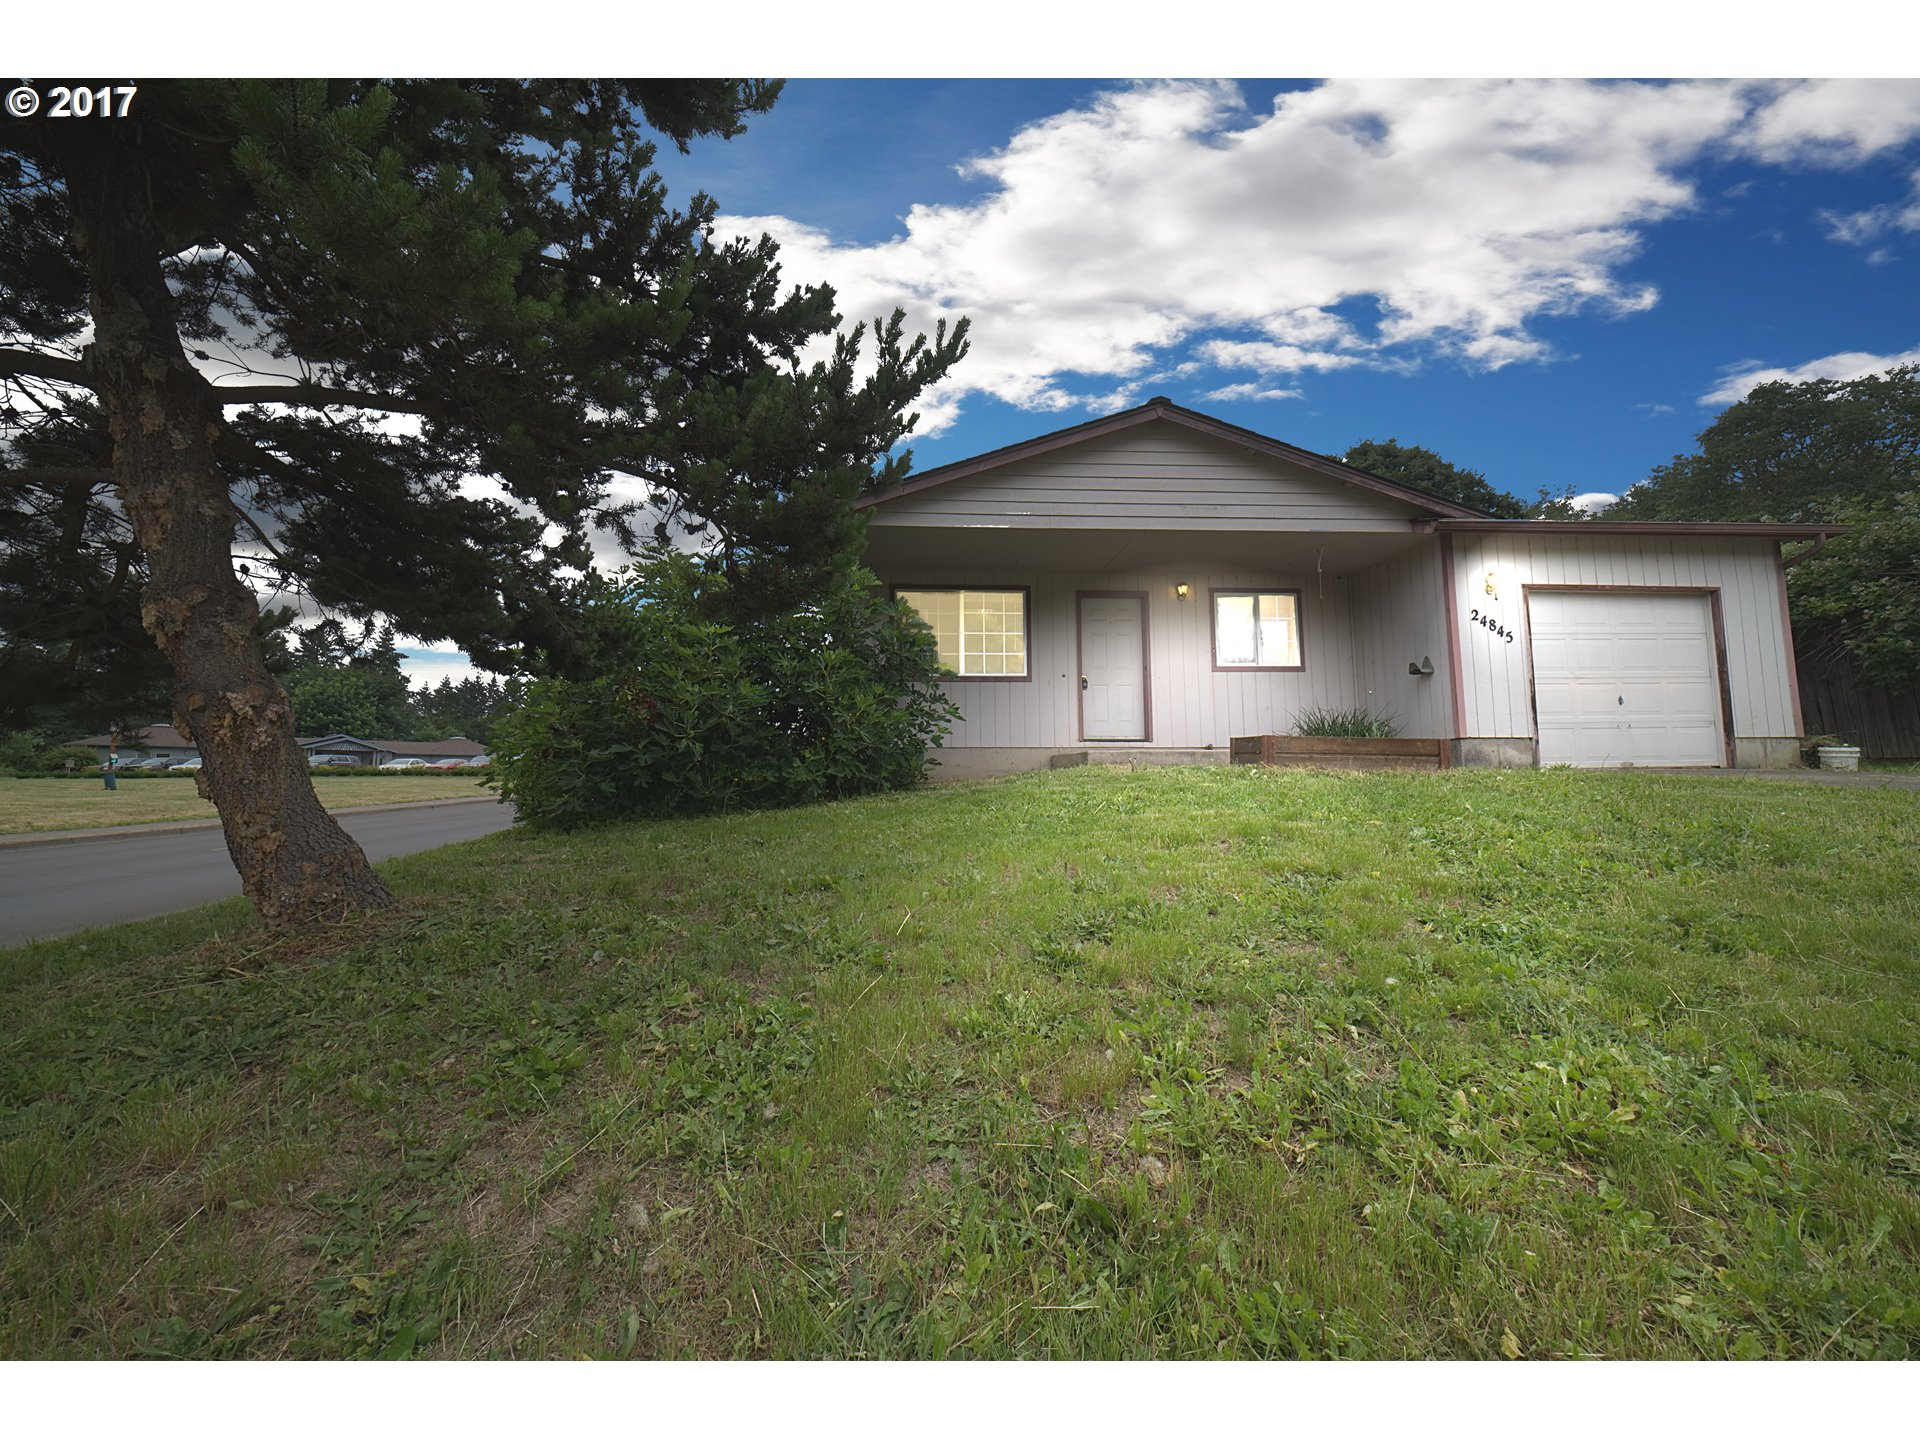 24845 DUNHAM AVE, Veneta, OR 97487